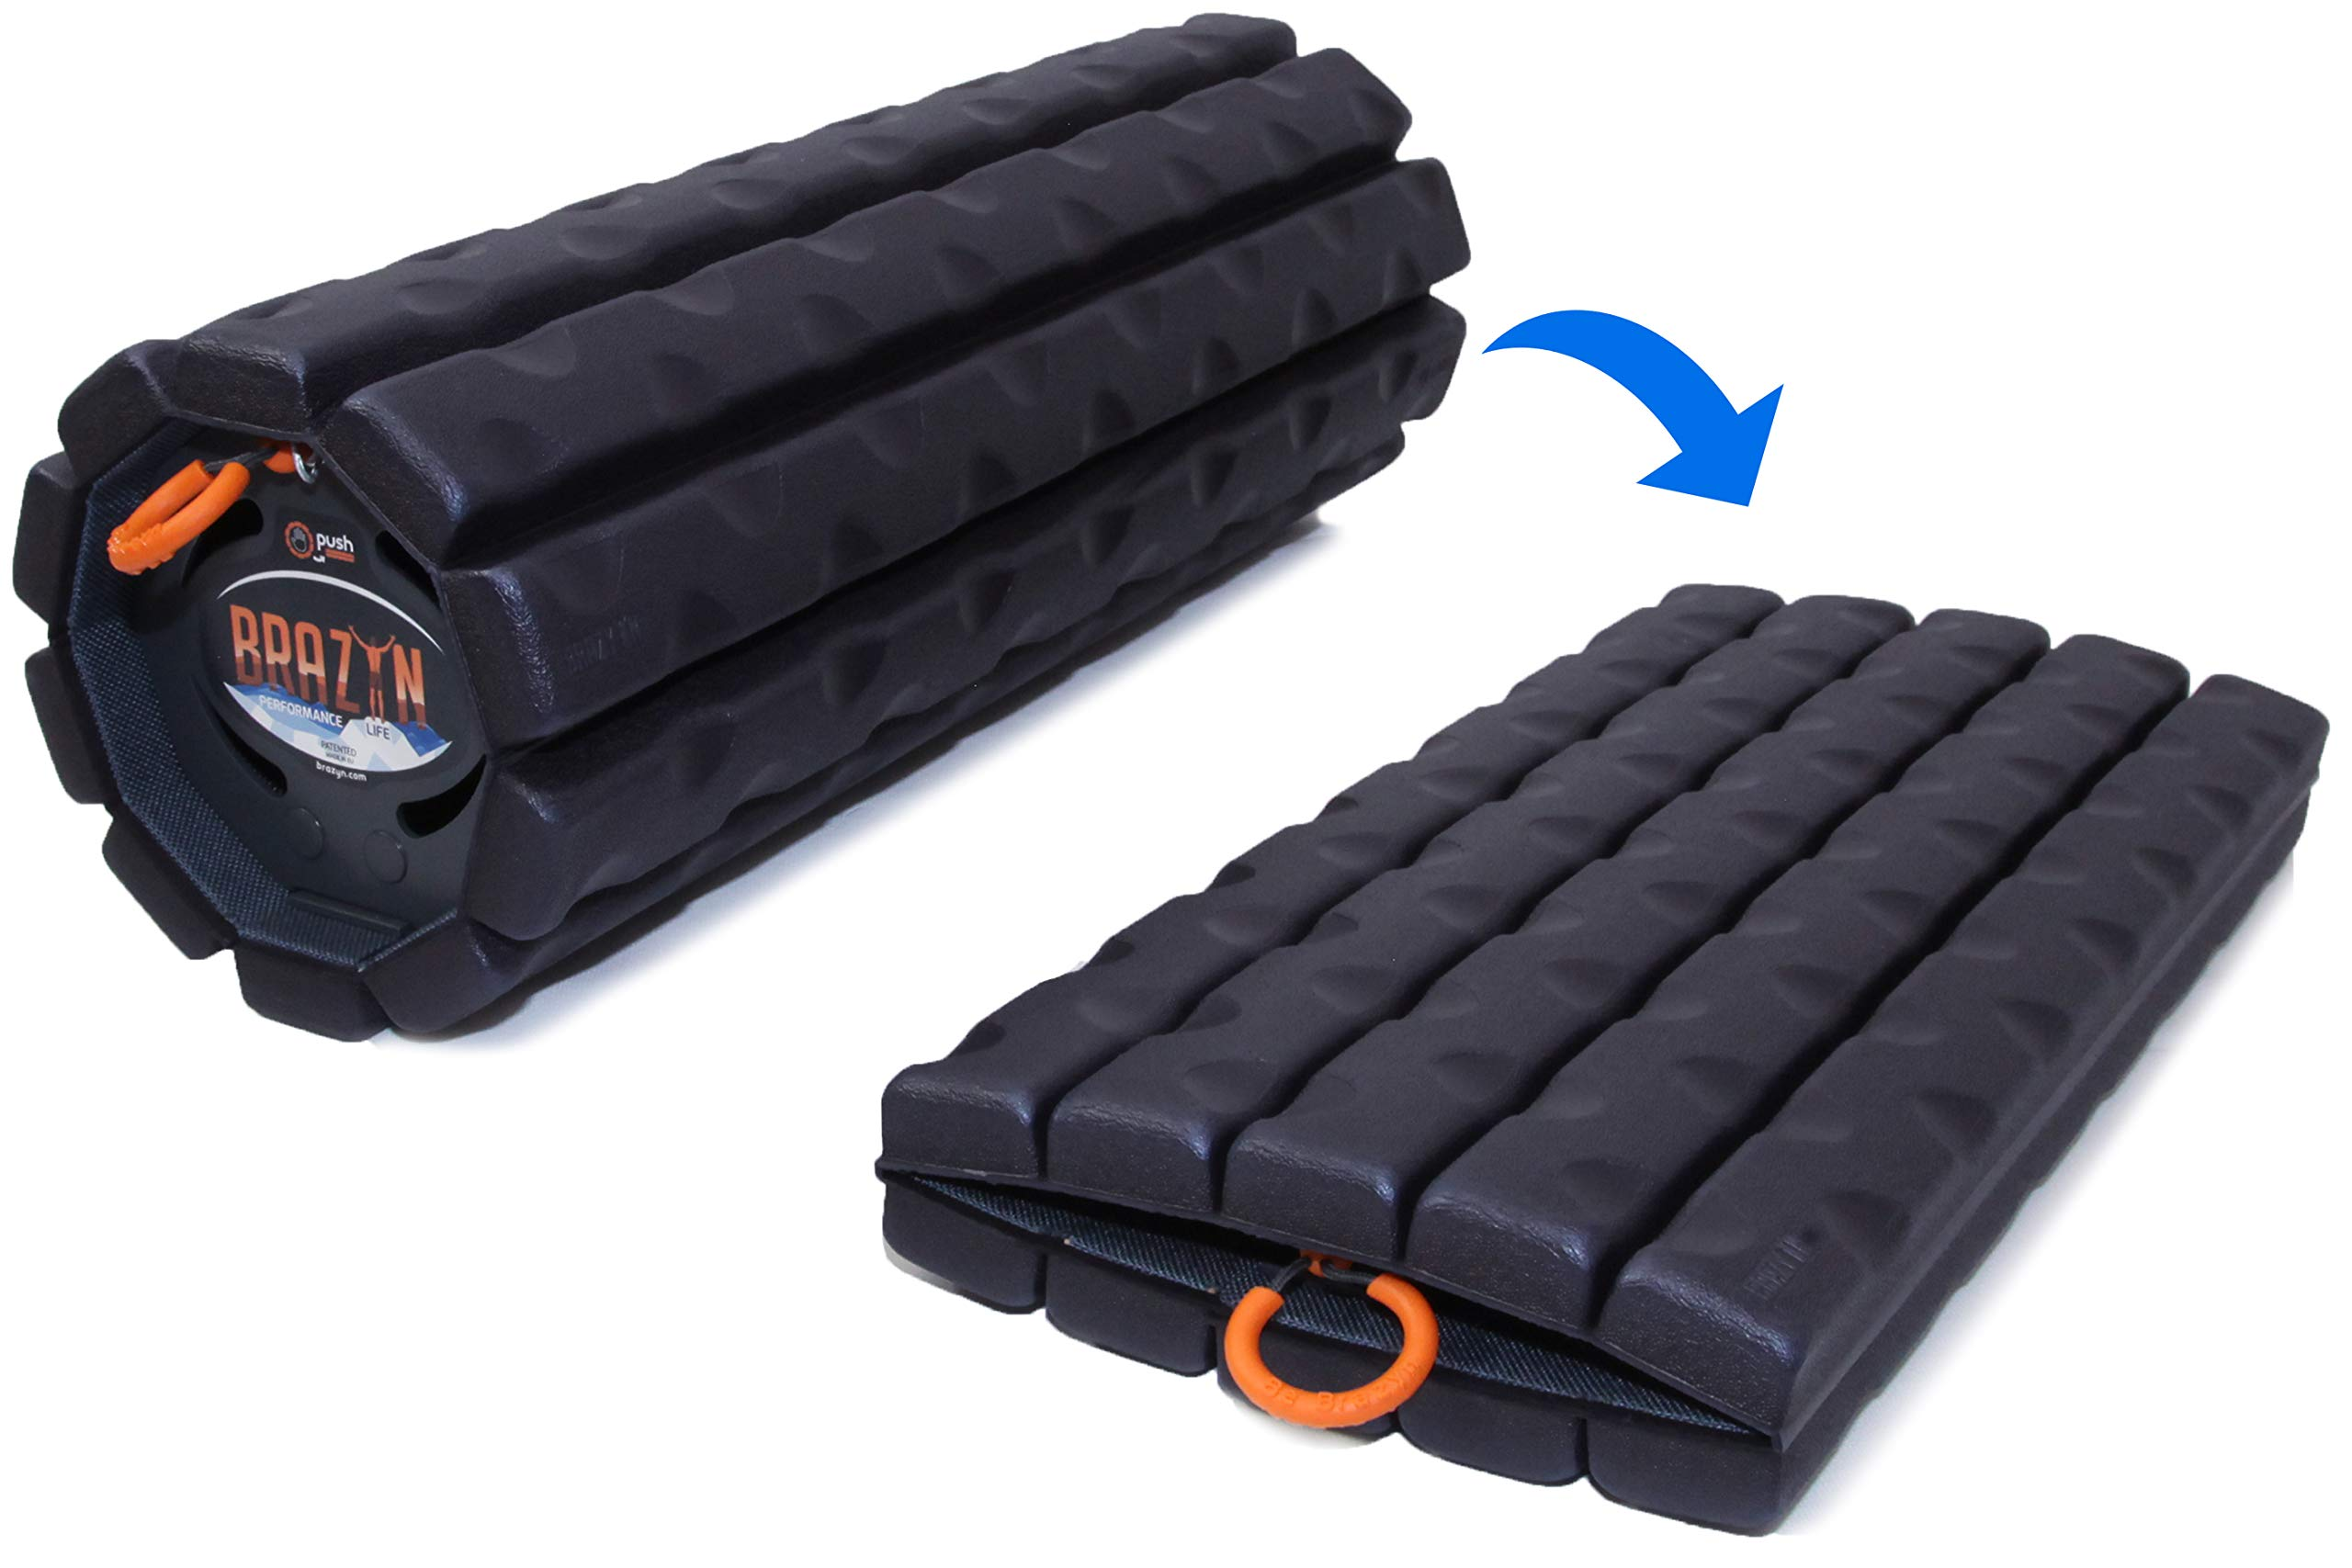 Brazyn Morph Bravo Foam Roller - Collapsible & Portable Muscle Roller for Travel Myofascial Release, Massage, Back Pain, and Increasing Physical Mobility - As Seen on Shark Tank (Midnight Blue)